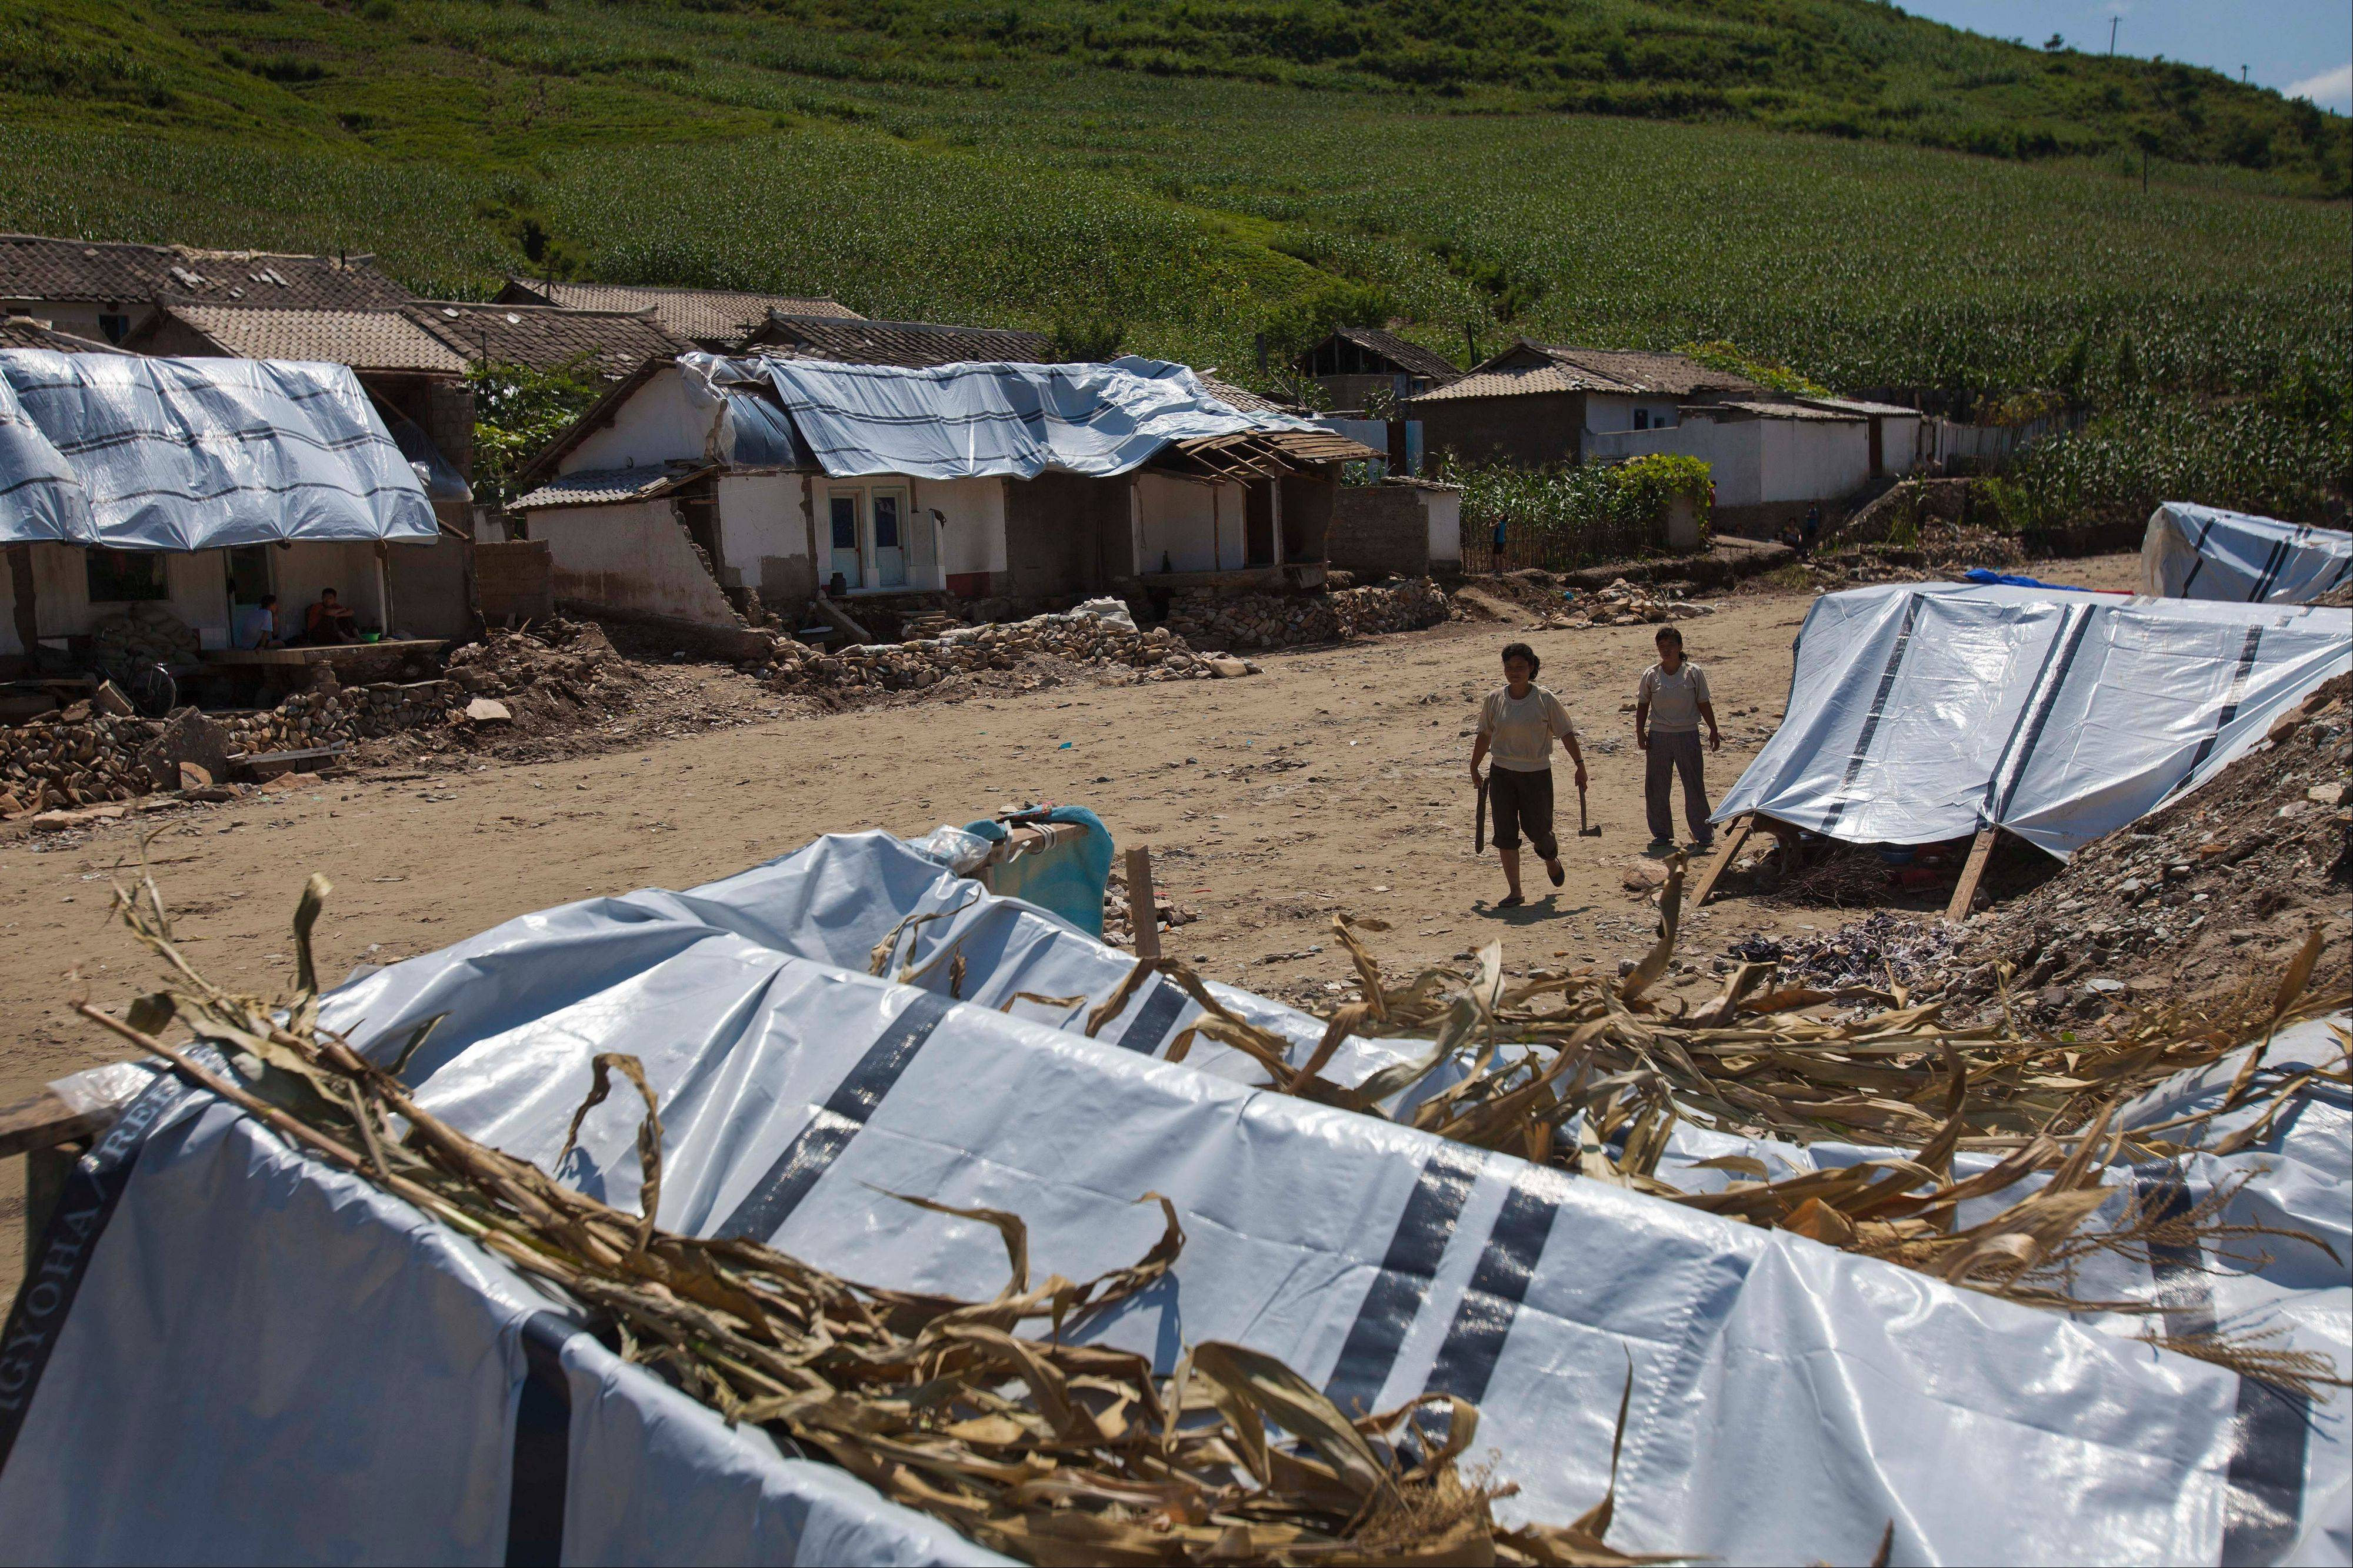 Displaced North Korean women, left homeless by July flooding, walk among temporary tents set up in their destroyed neighborhood in Ungok, North Korea, on Monday. Floods killed at least 169 North Koreans nationwide and destroyed tens of thousands of homes.